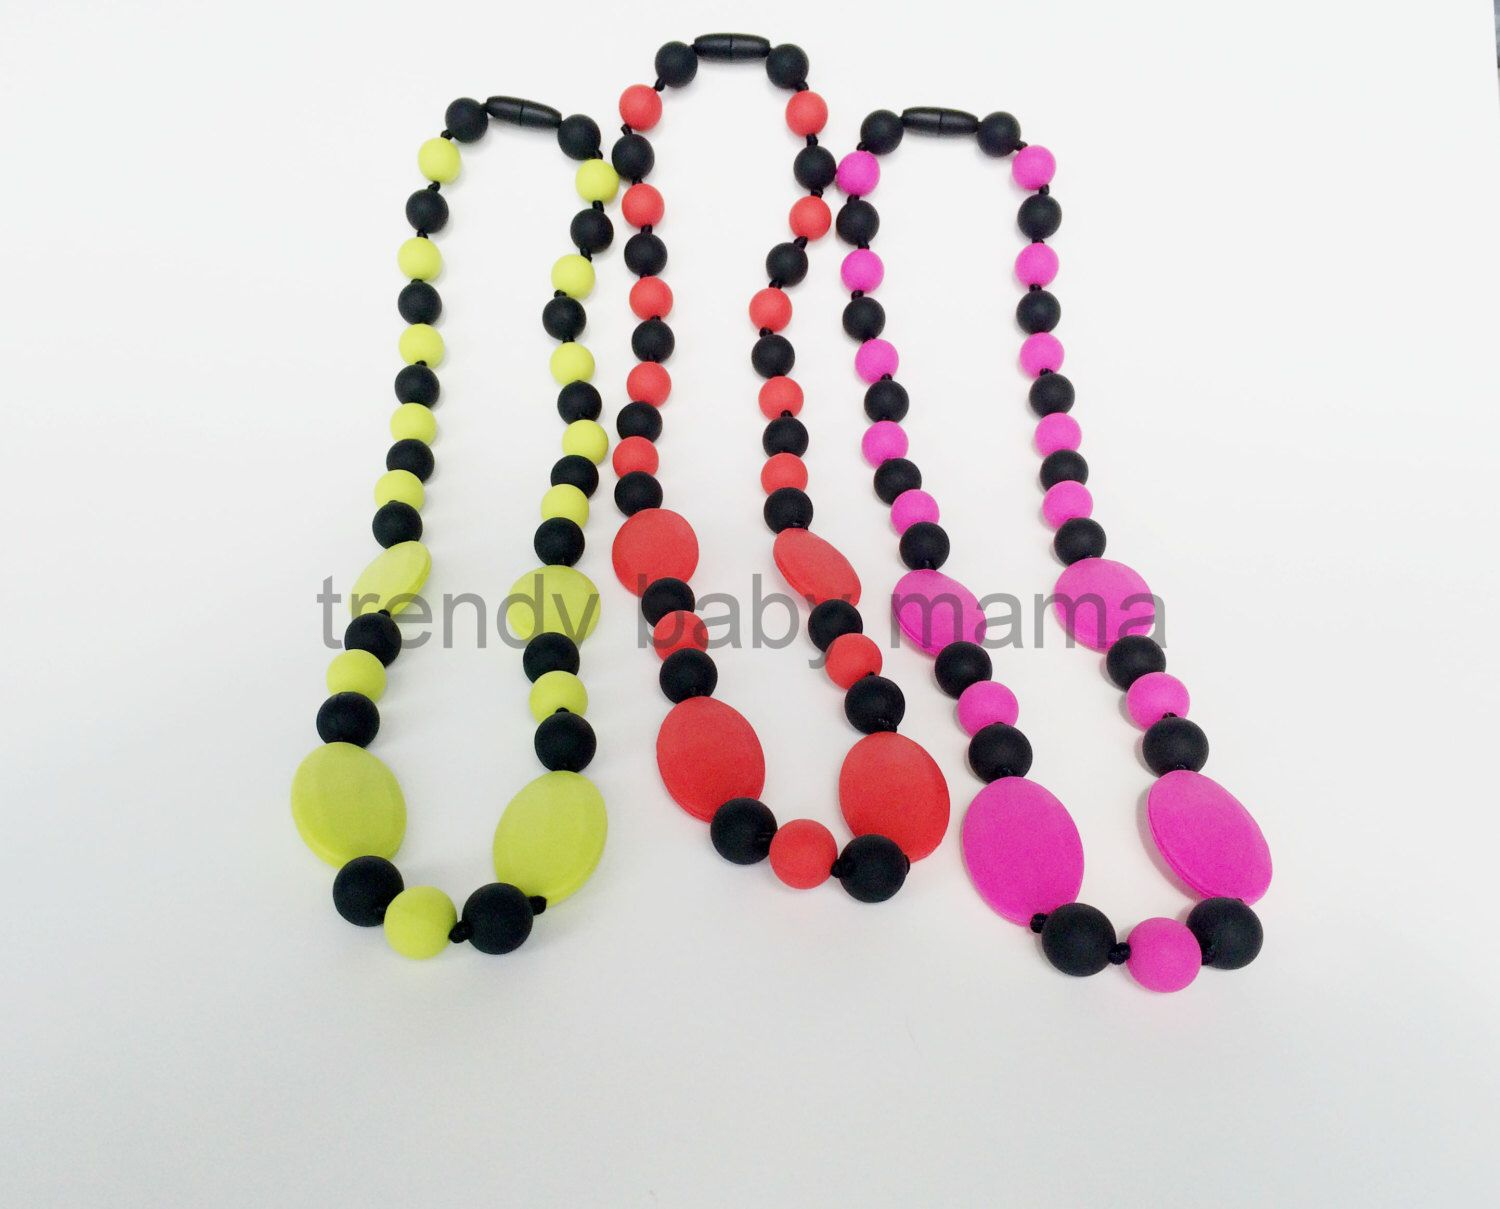 Silicone teething necklace nursing chew beads oval flat bpa free